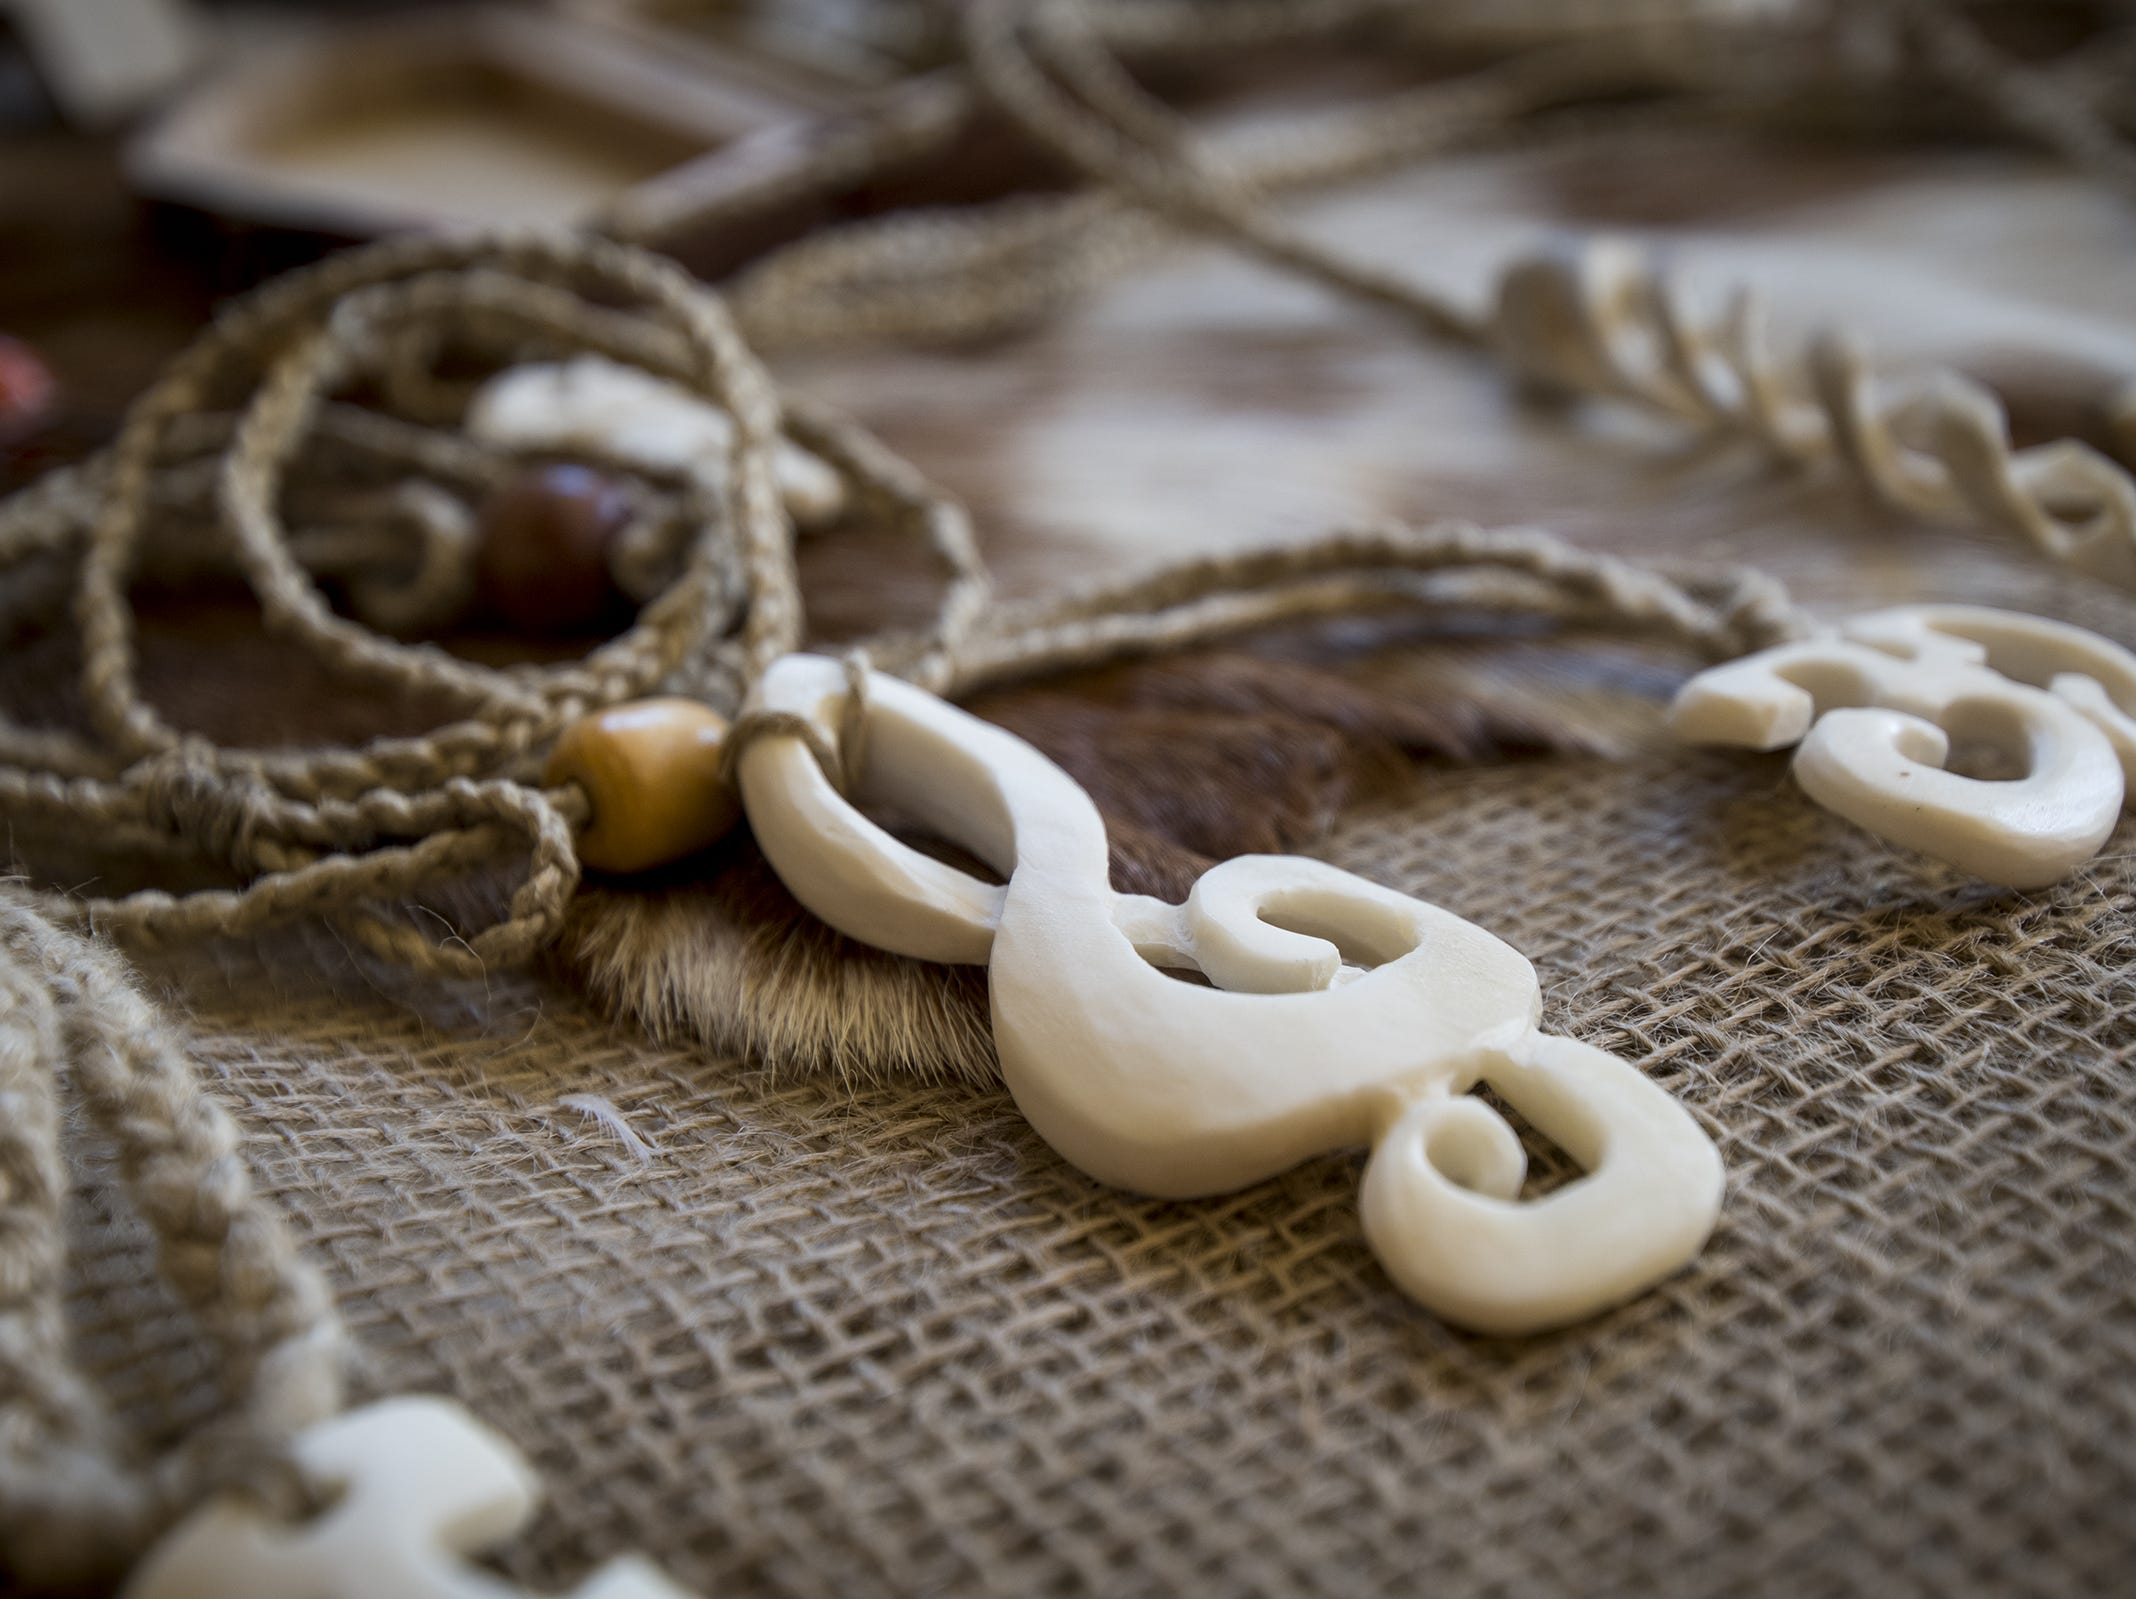 Handmade necklaces are laid out at Tula's Bone Carving the Ohio Renaissance Festival Sunday, October 21, 2018 in Waynesville, Ohio.